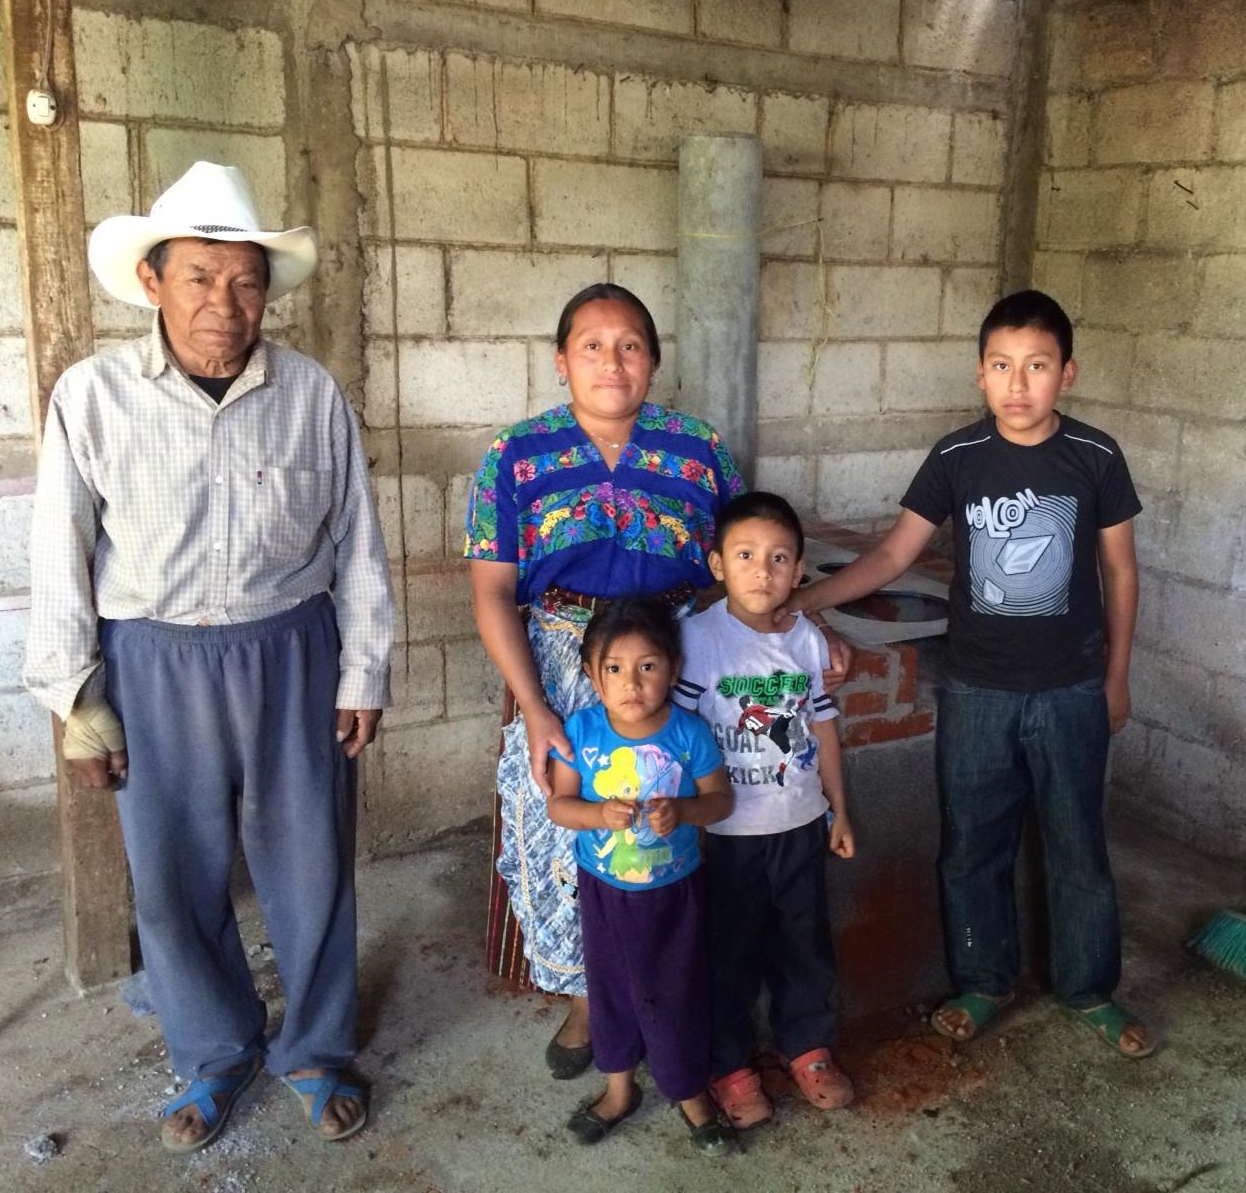 A Guatemalan family stands inside their new home in front of their new stove, both built by a team of Homes from the Heart volunteers.